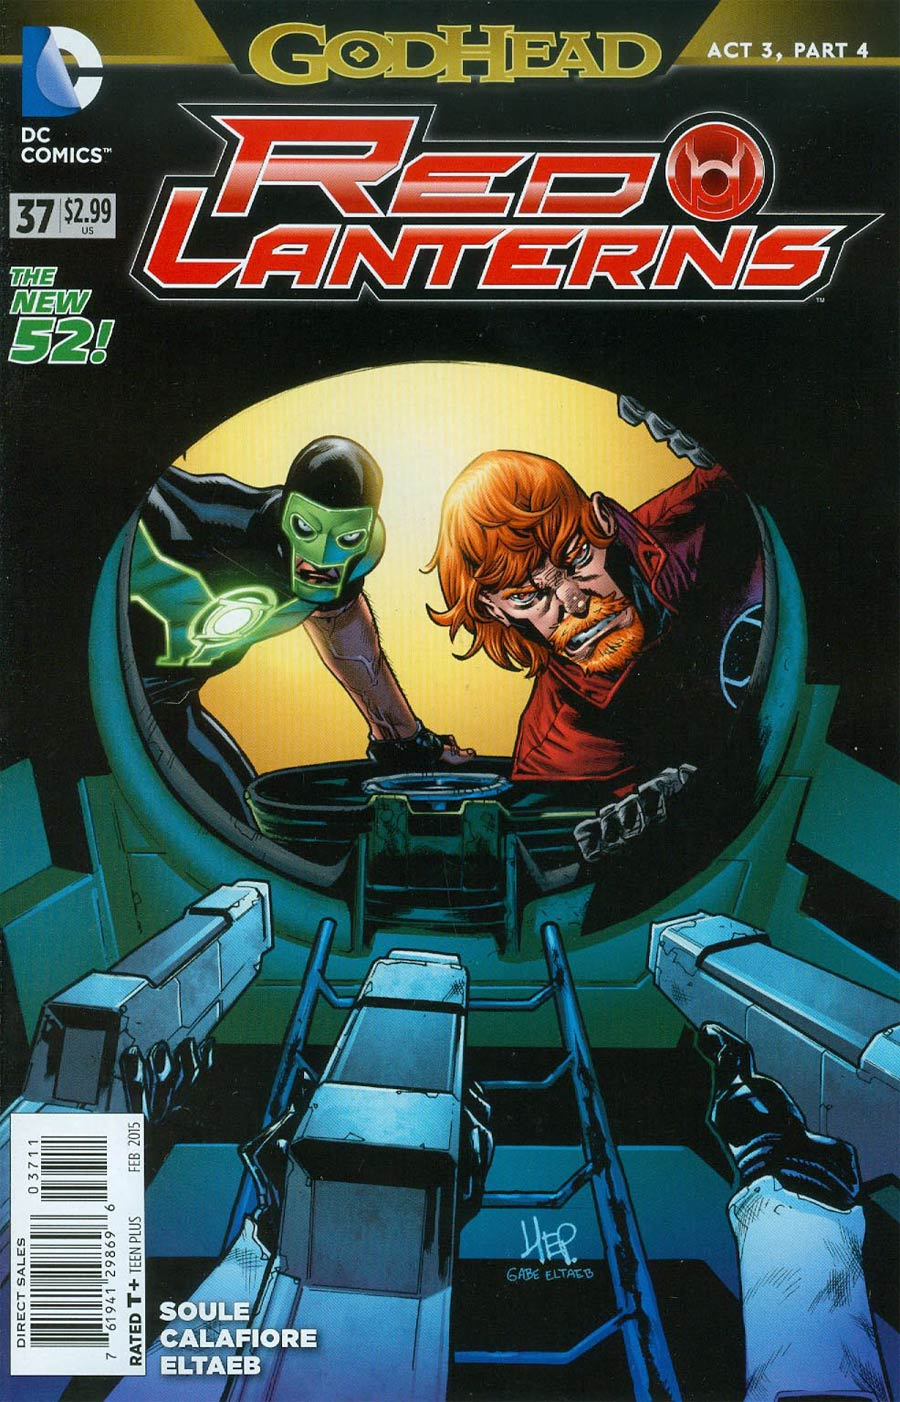 Red Lanterns #37 (Godhead Act 3 Part 4)